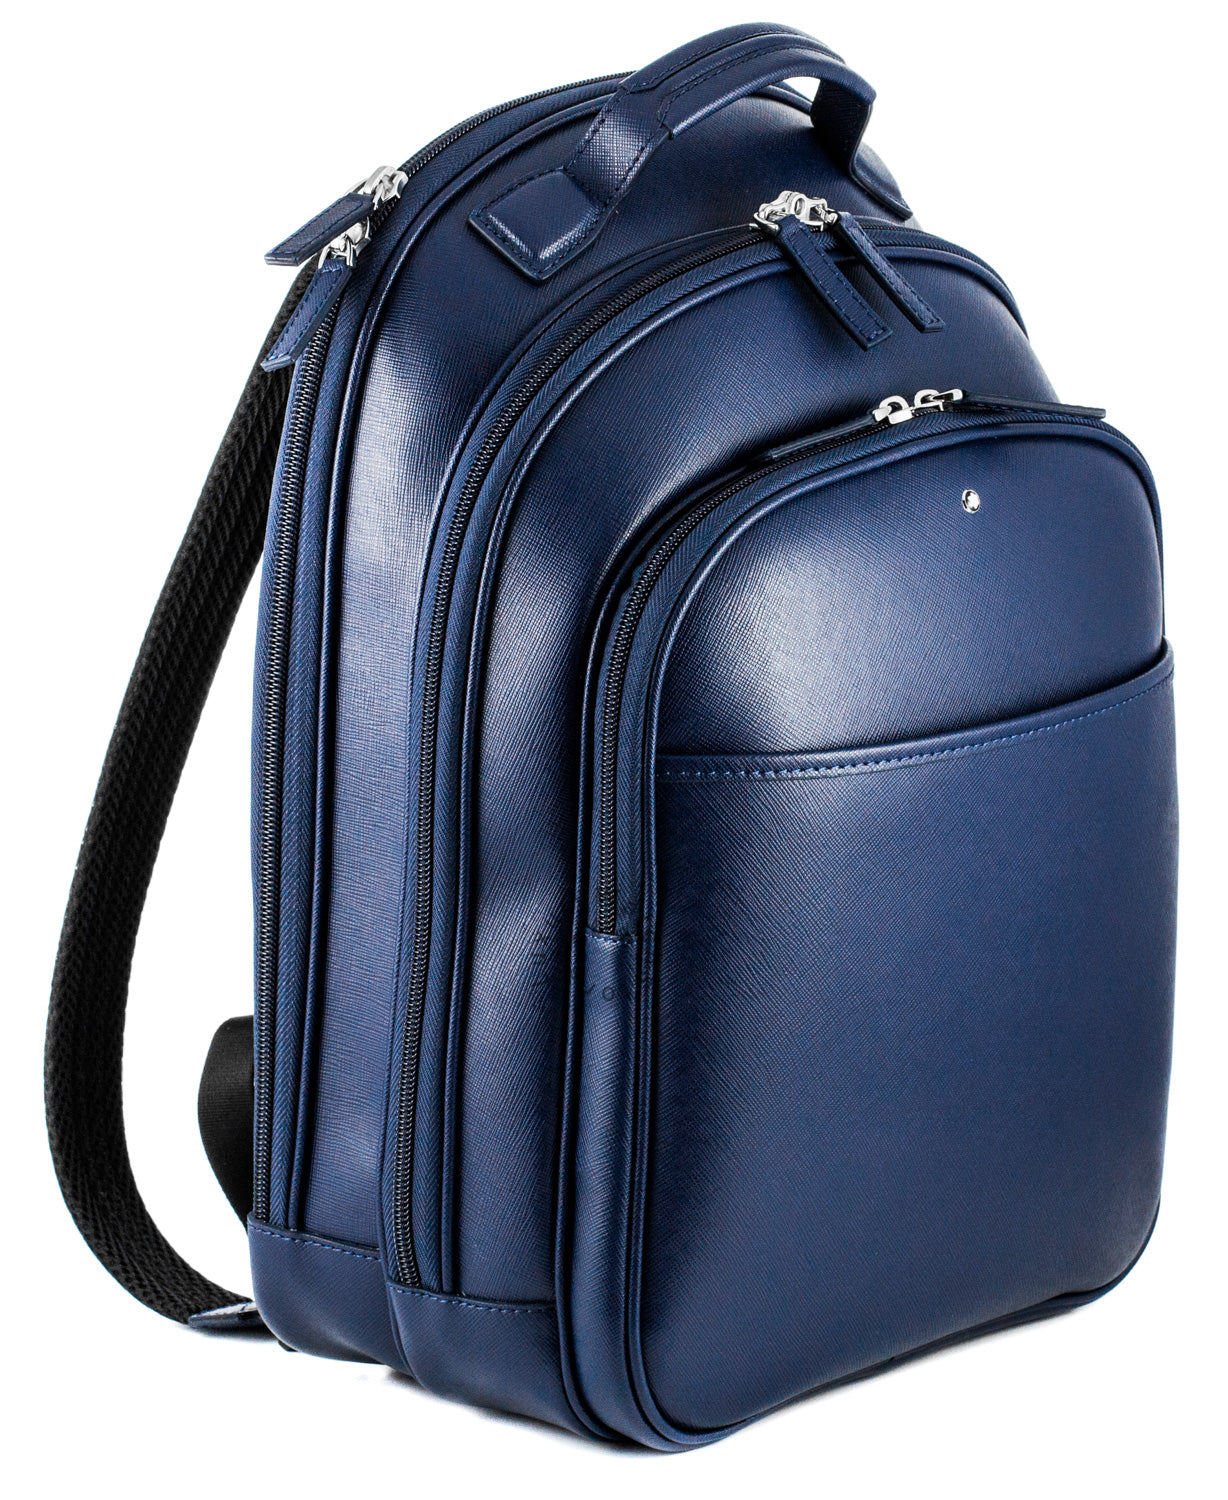 Montblanc Sartorial Print Small Indigo Leather Backpack 115629